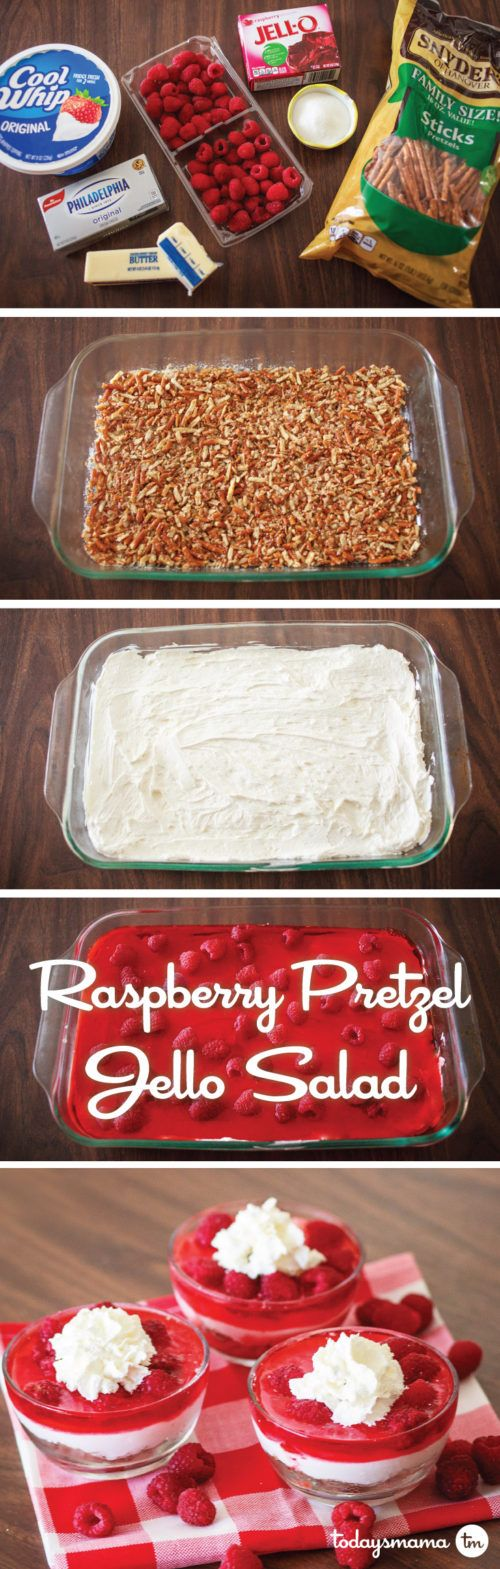 Raspberry Pretzel Jello Salad | The most amazing mix of salty, crunchy, creamy, sweet, and fruity that your tastebuds will ever experience. THIS dish is  a holiday hero and will become the best thing on the table at any potluck, BBQ, or family gathering! It's pretty much our favorite of all time.  via @todaysmama